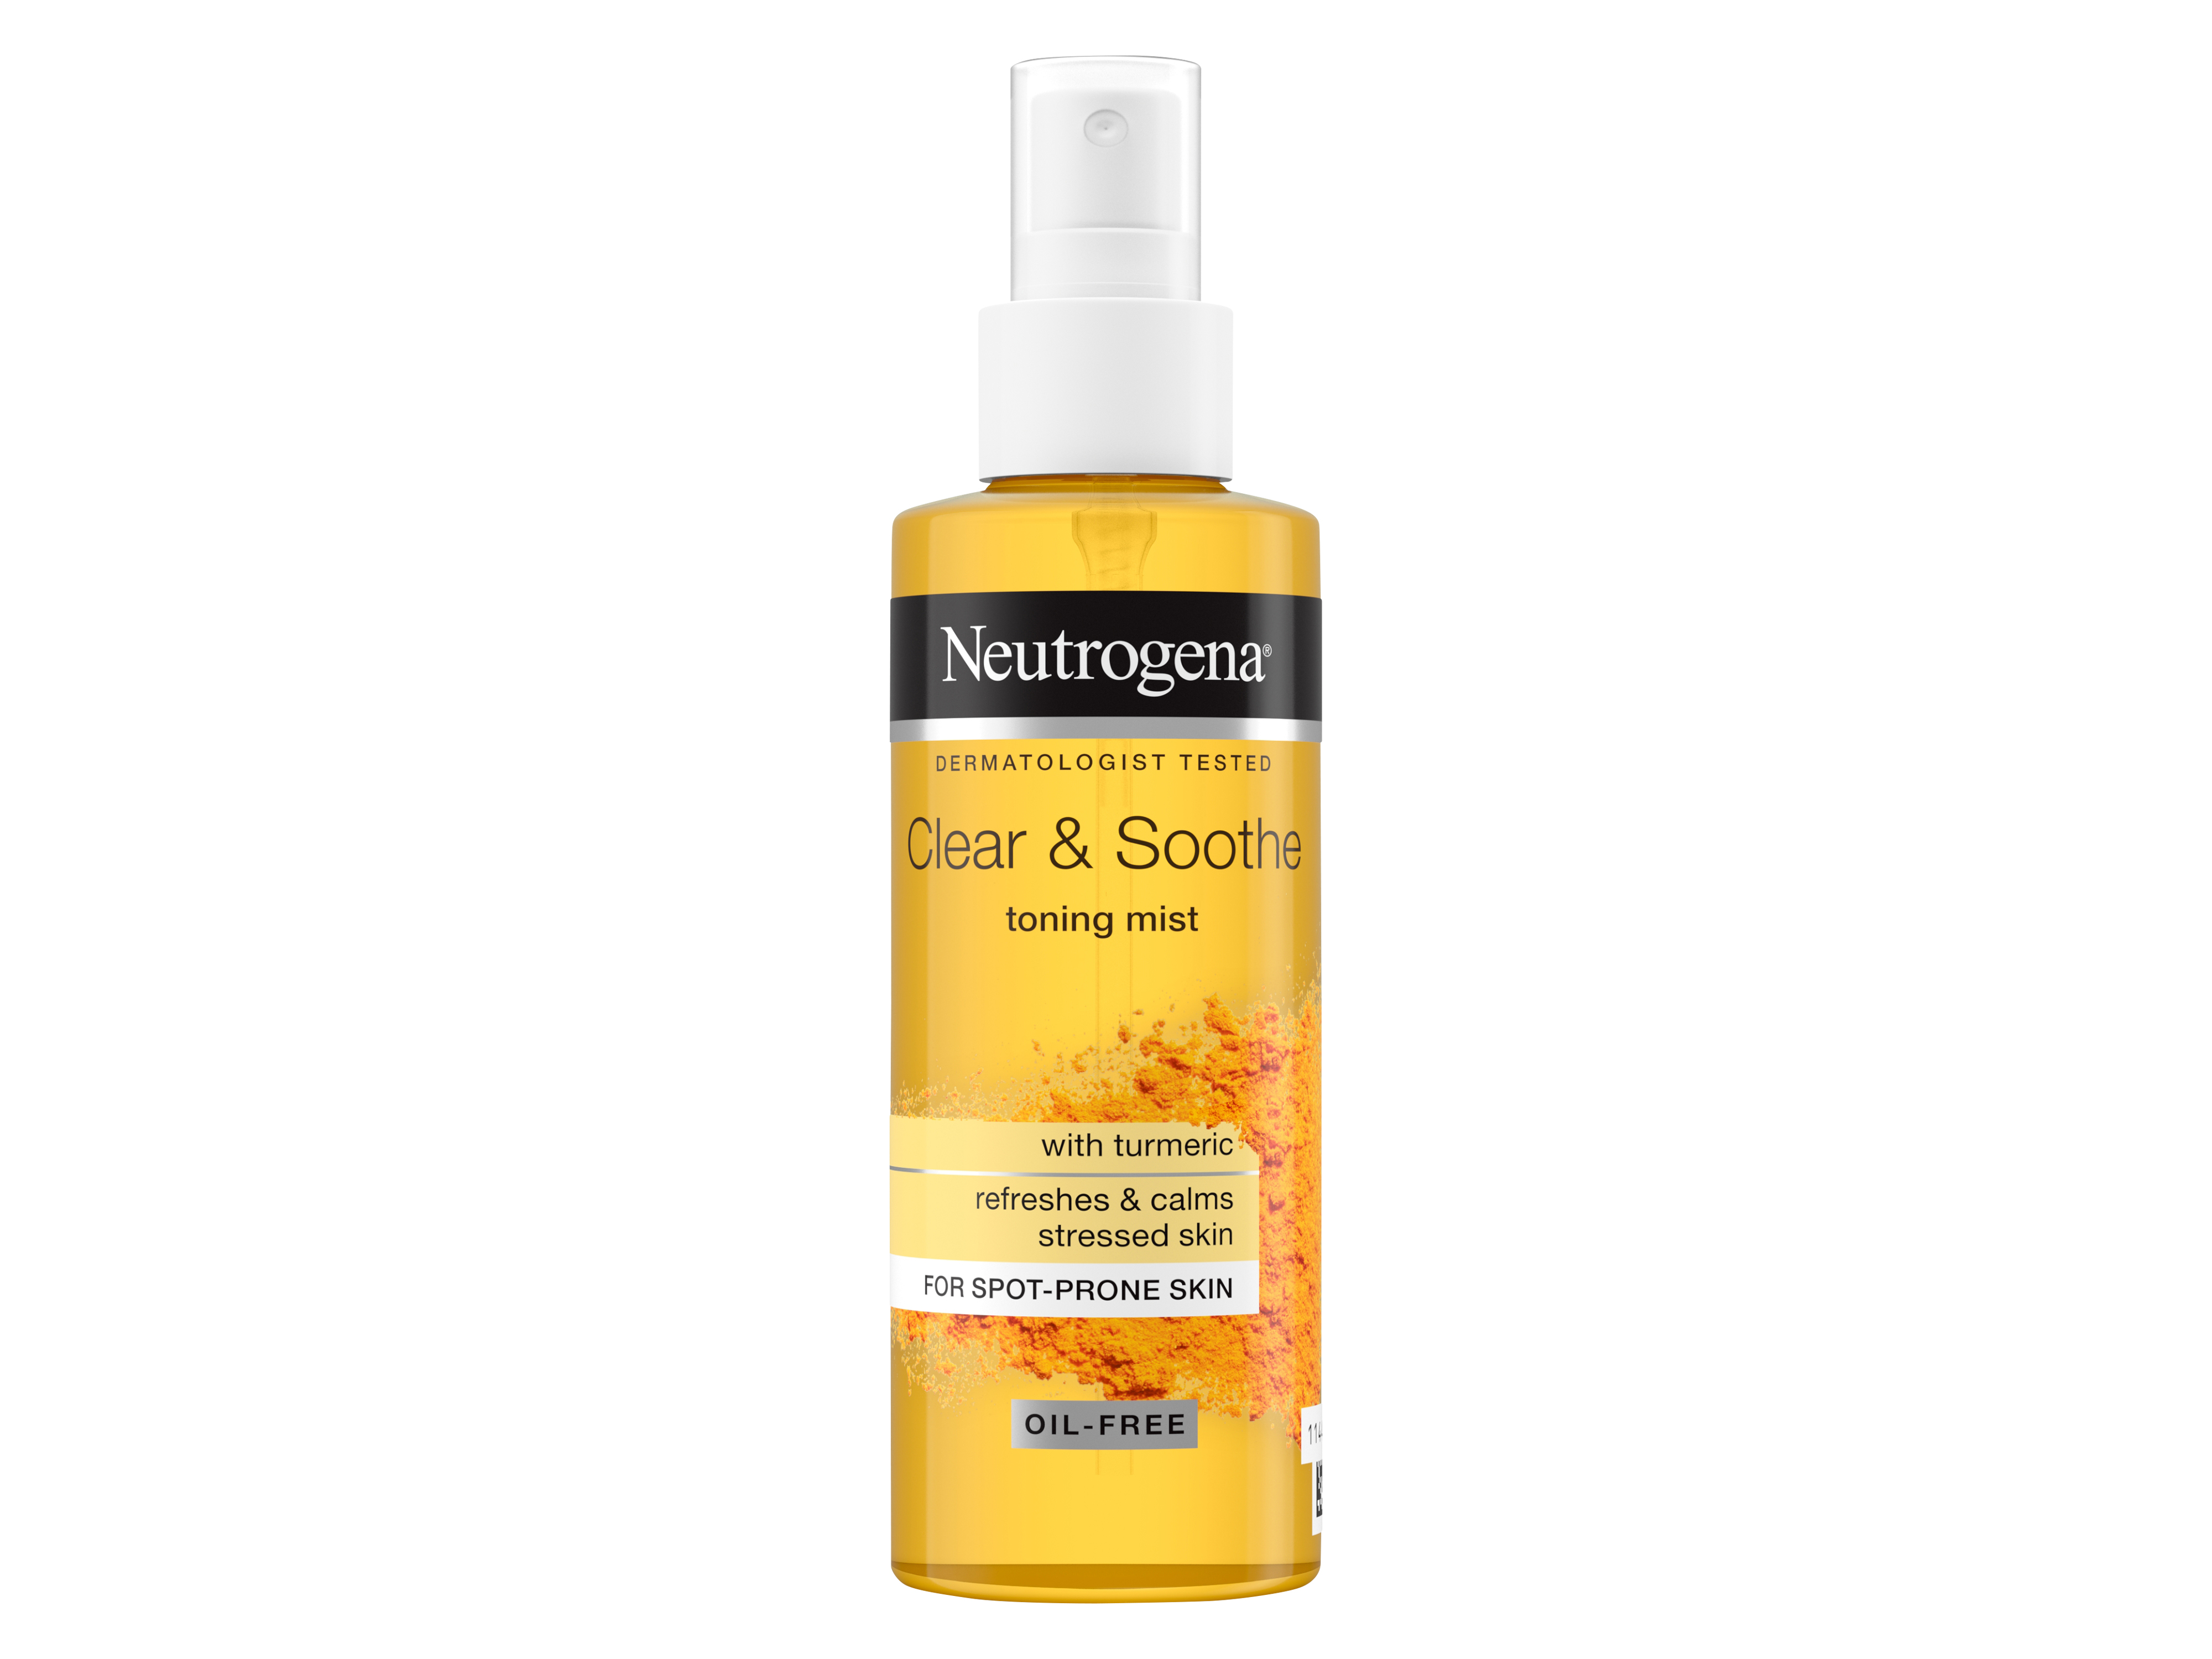 Neutrogena Clear & Soothe Toning Mist, 150 ml